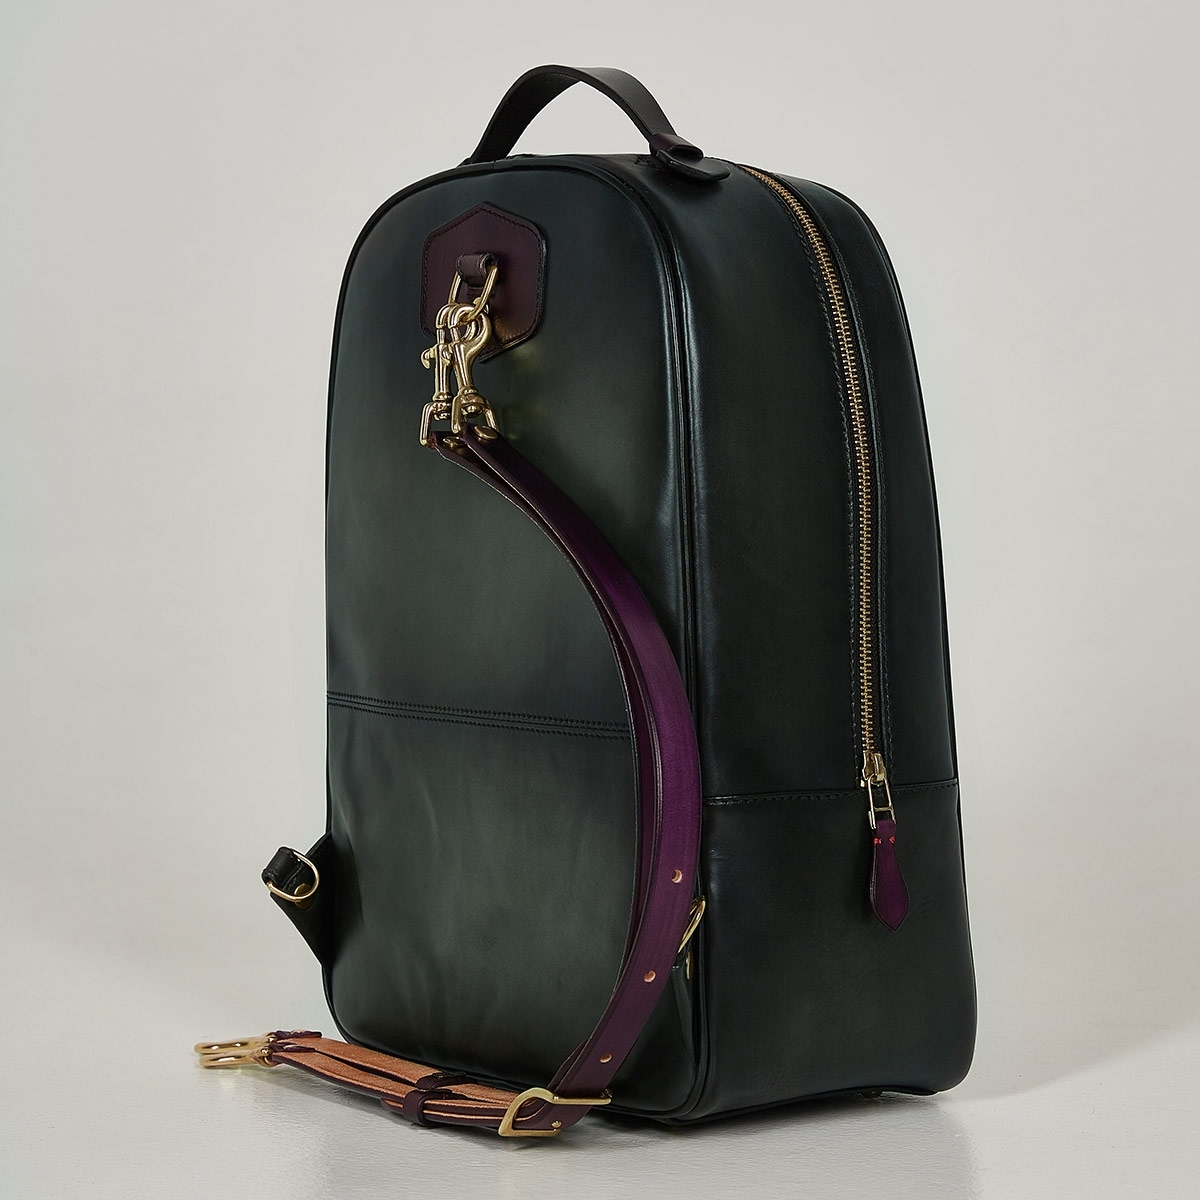 City backpack ASPEN plum wine & dark agave